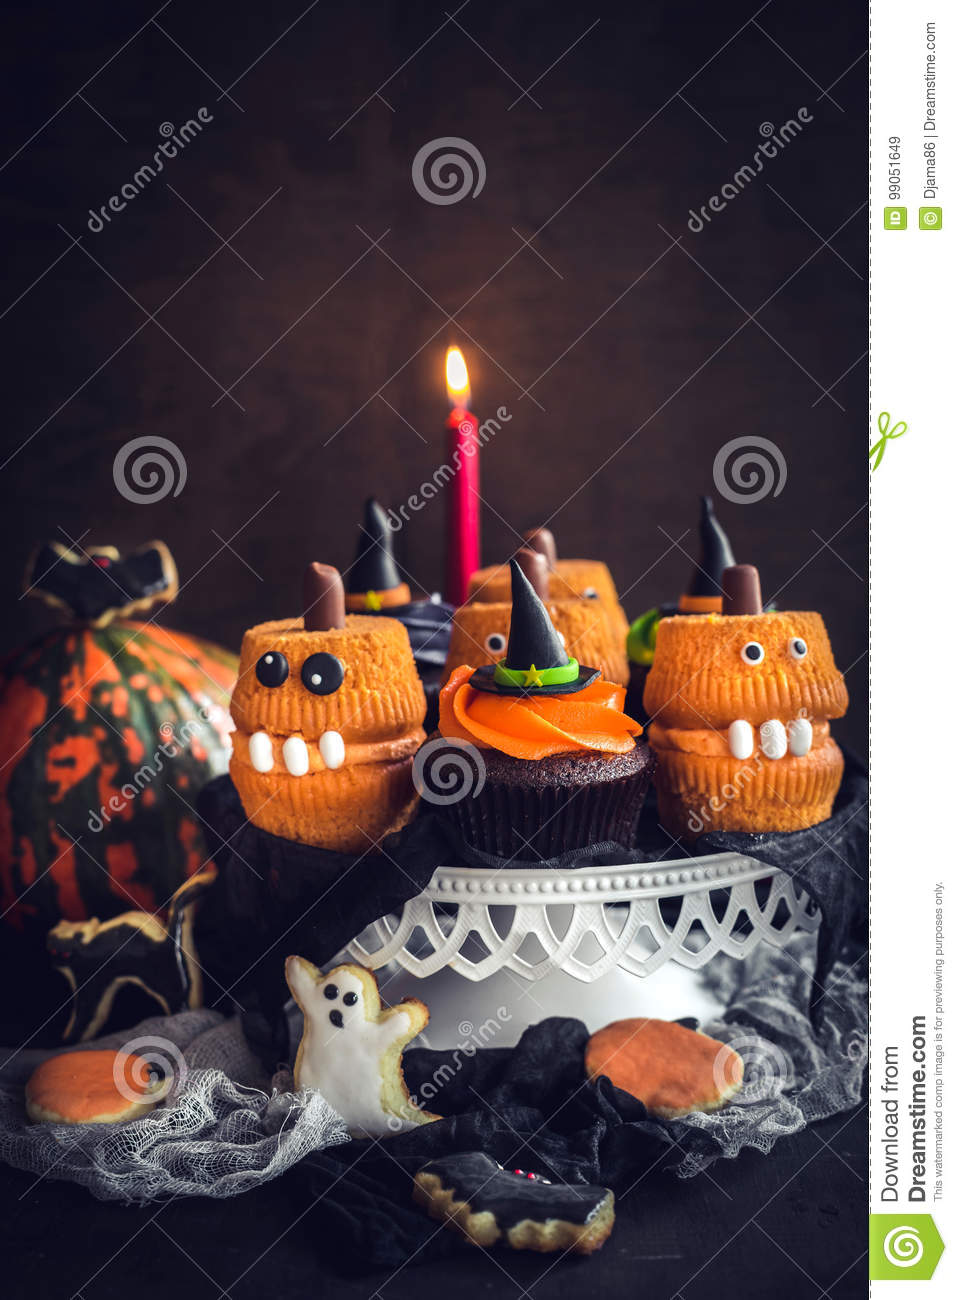 Remarkable Scary Halloween Cup Cakes Stock Image Image Of Decoration 99051649 Personalised Birthday Cards Epsylily Jamesorg